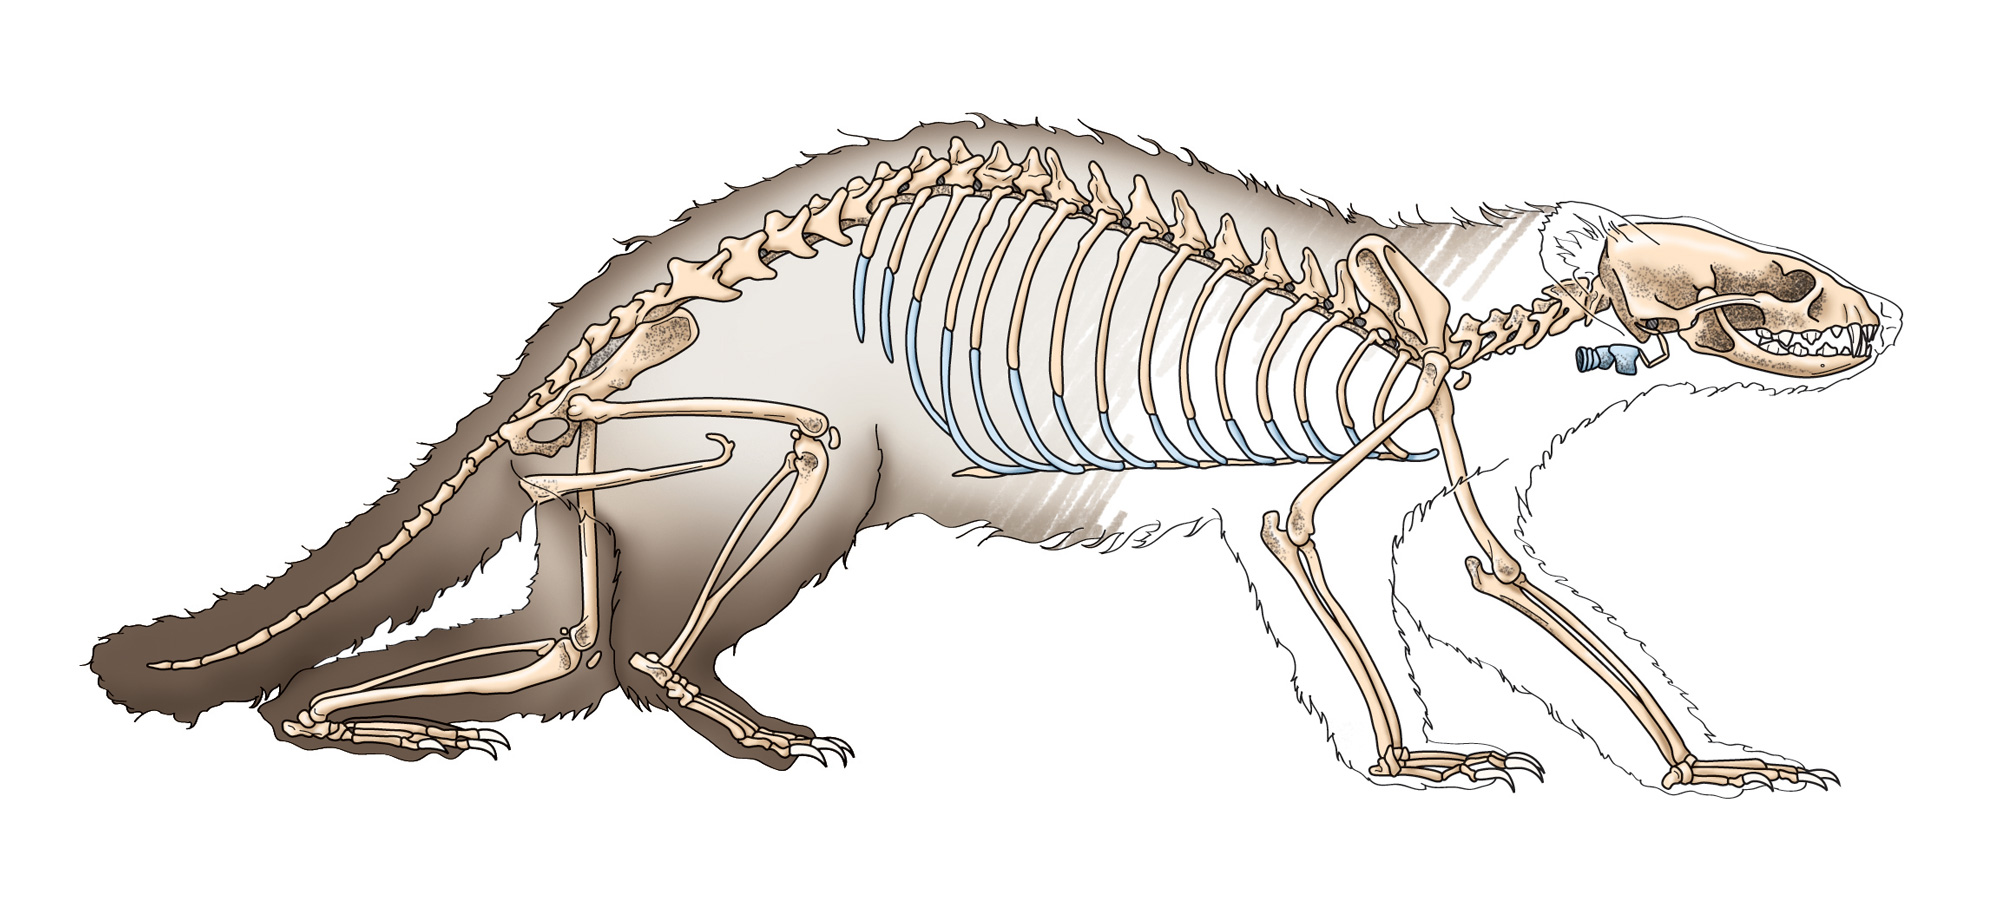 Ferret skeleton